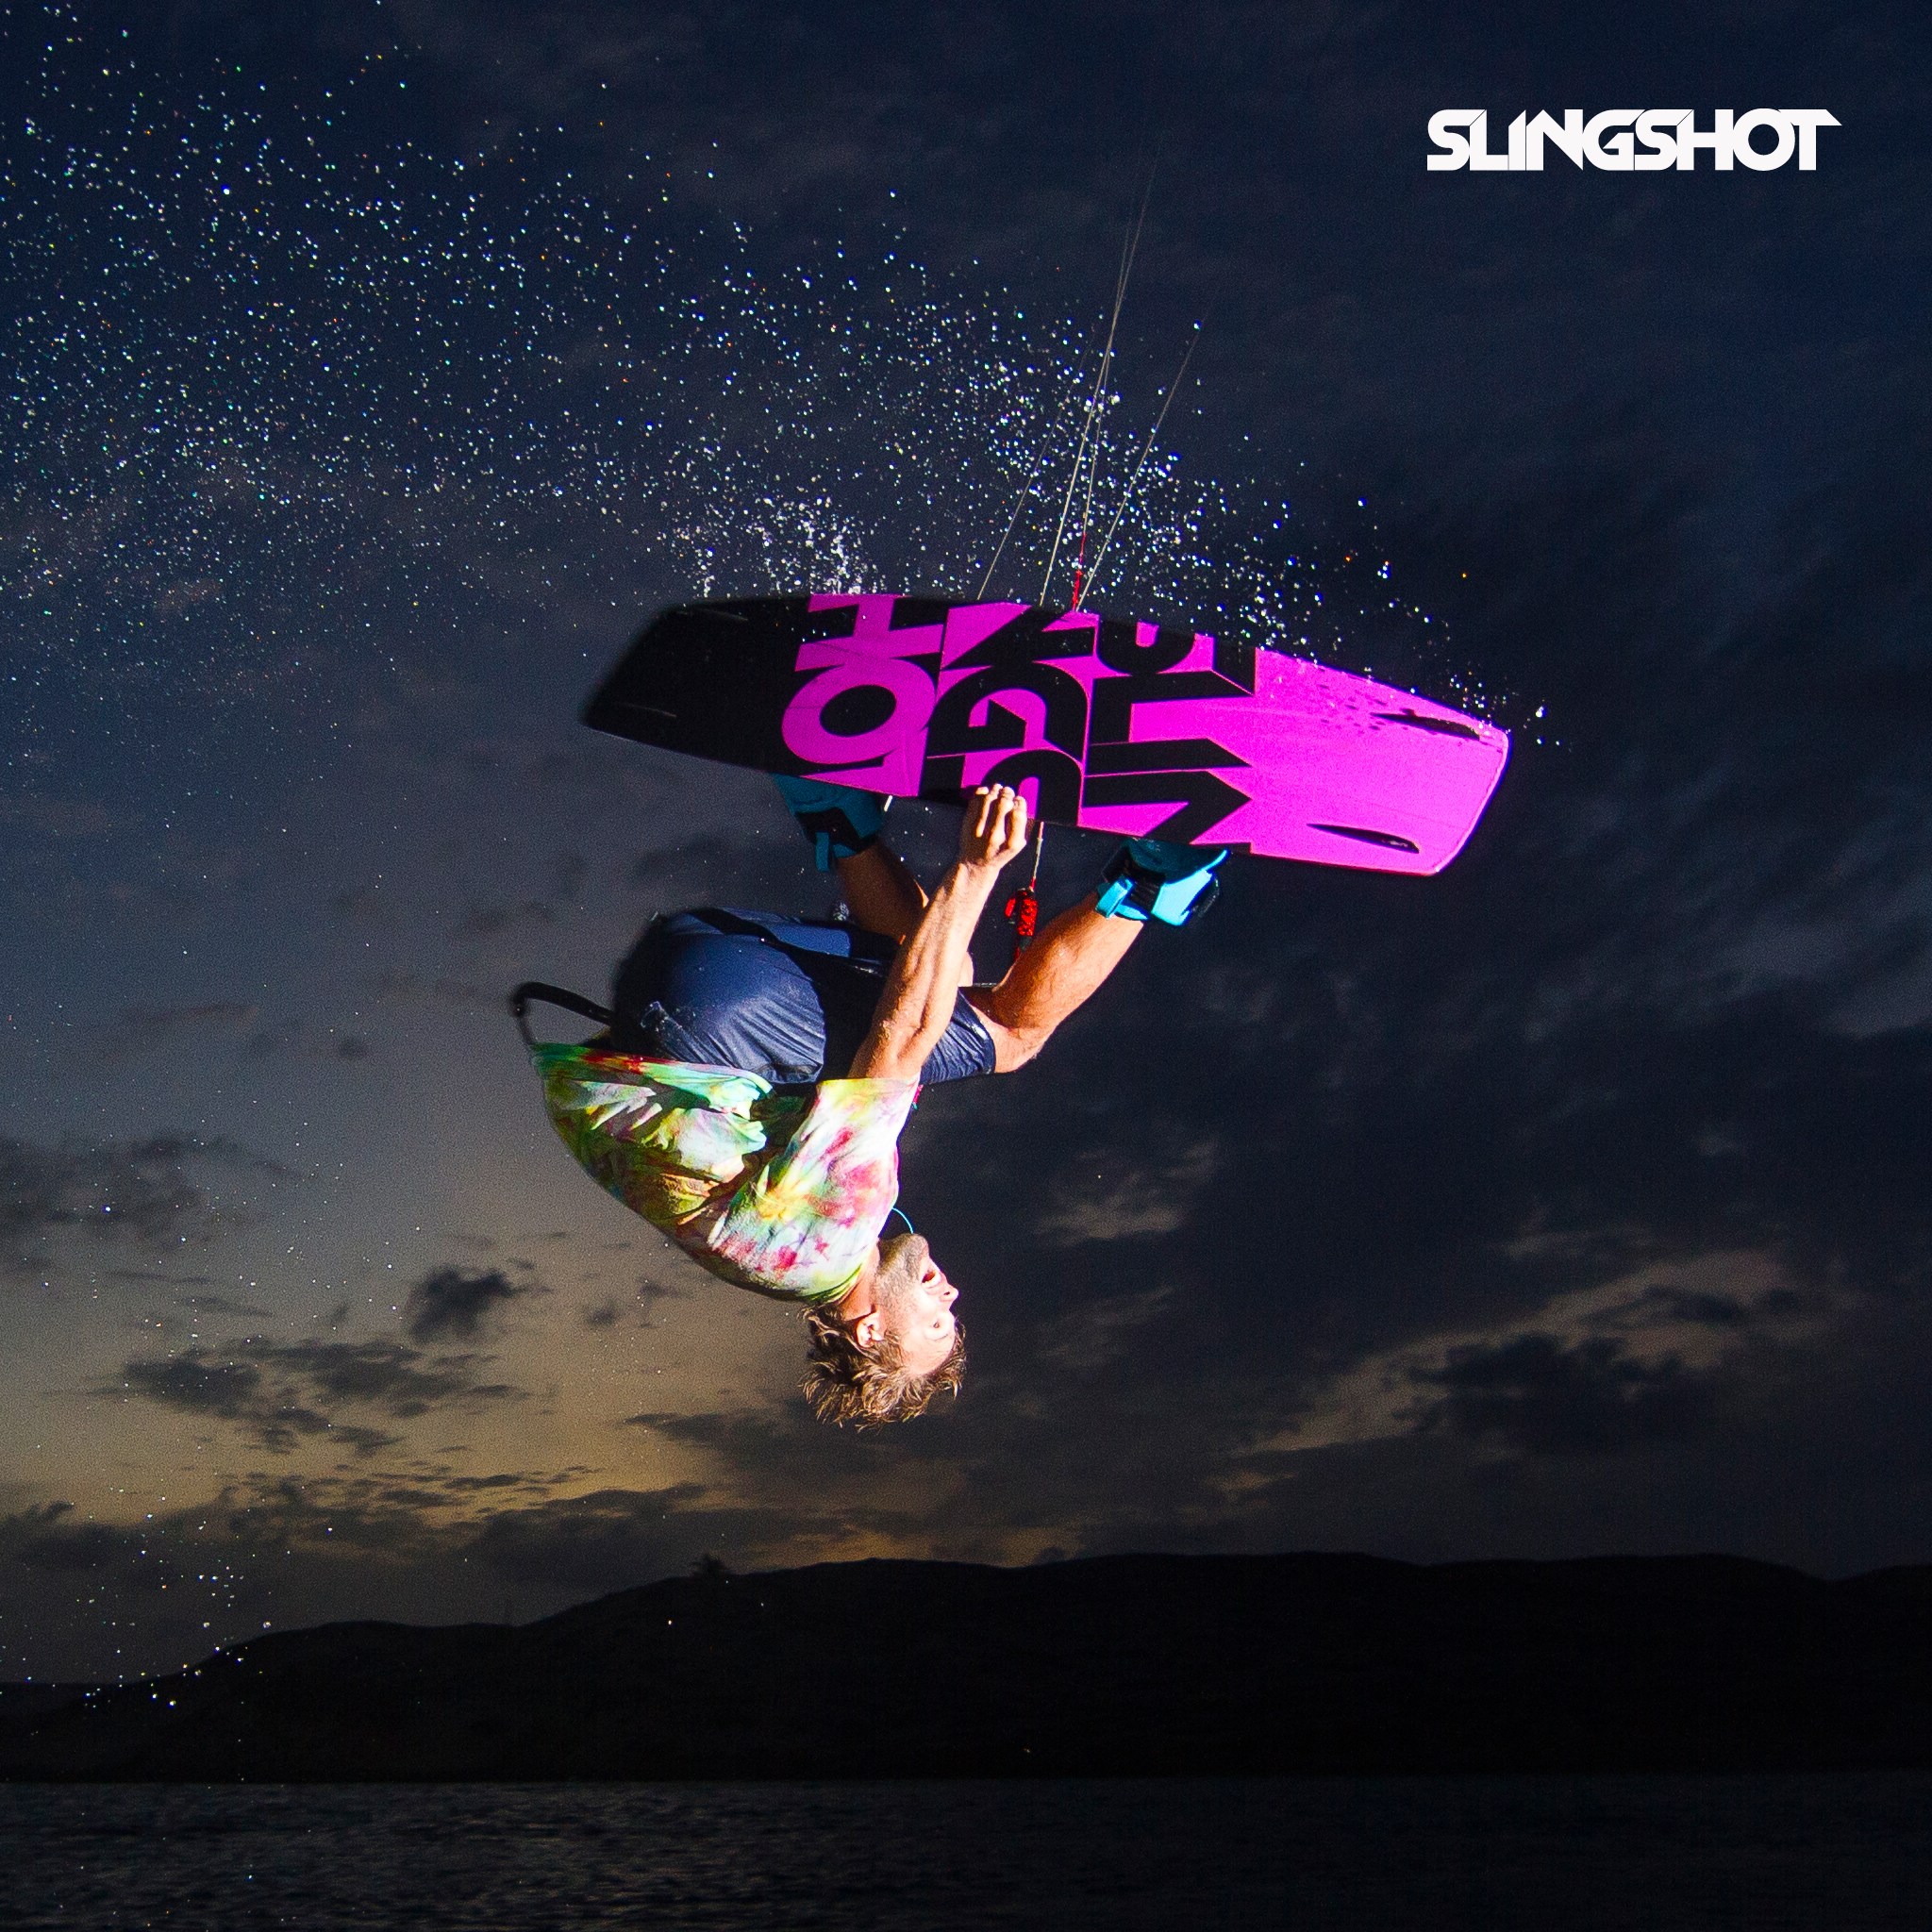 kitesurf wallpaper image - Sam Light on the 2015 Slingshot asylum board. Inverted with a grab kitesurfing. - in resolution: iPad 2 & 3 2048 X 2048